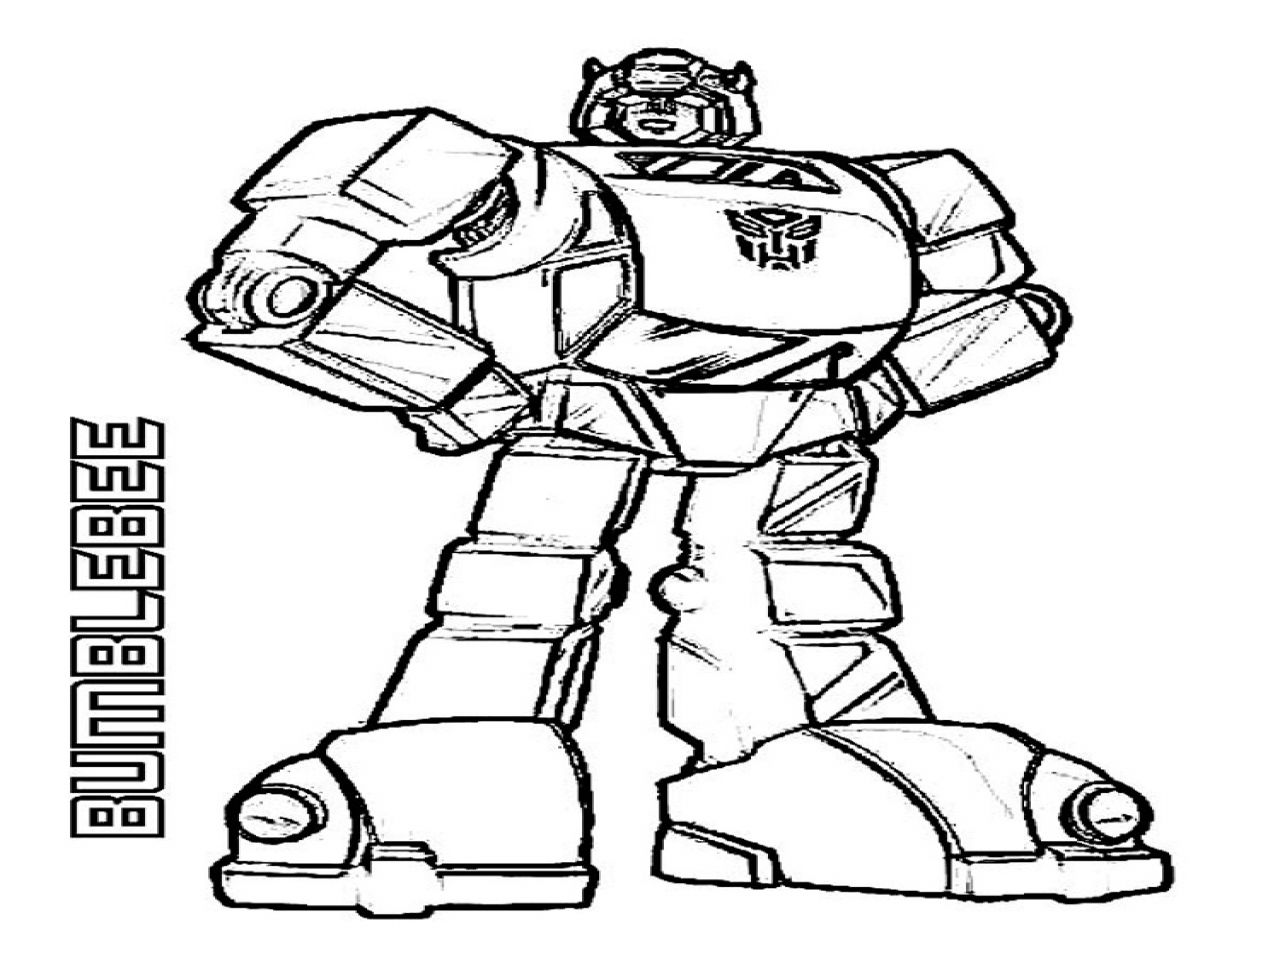 Bumble Bee From Transformers Free Colouring Pages